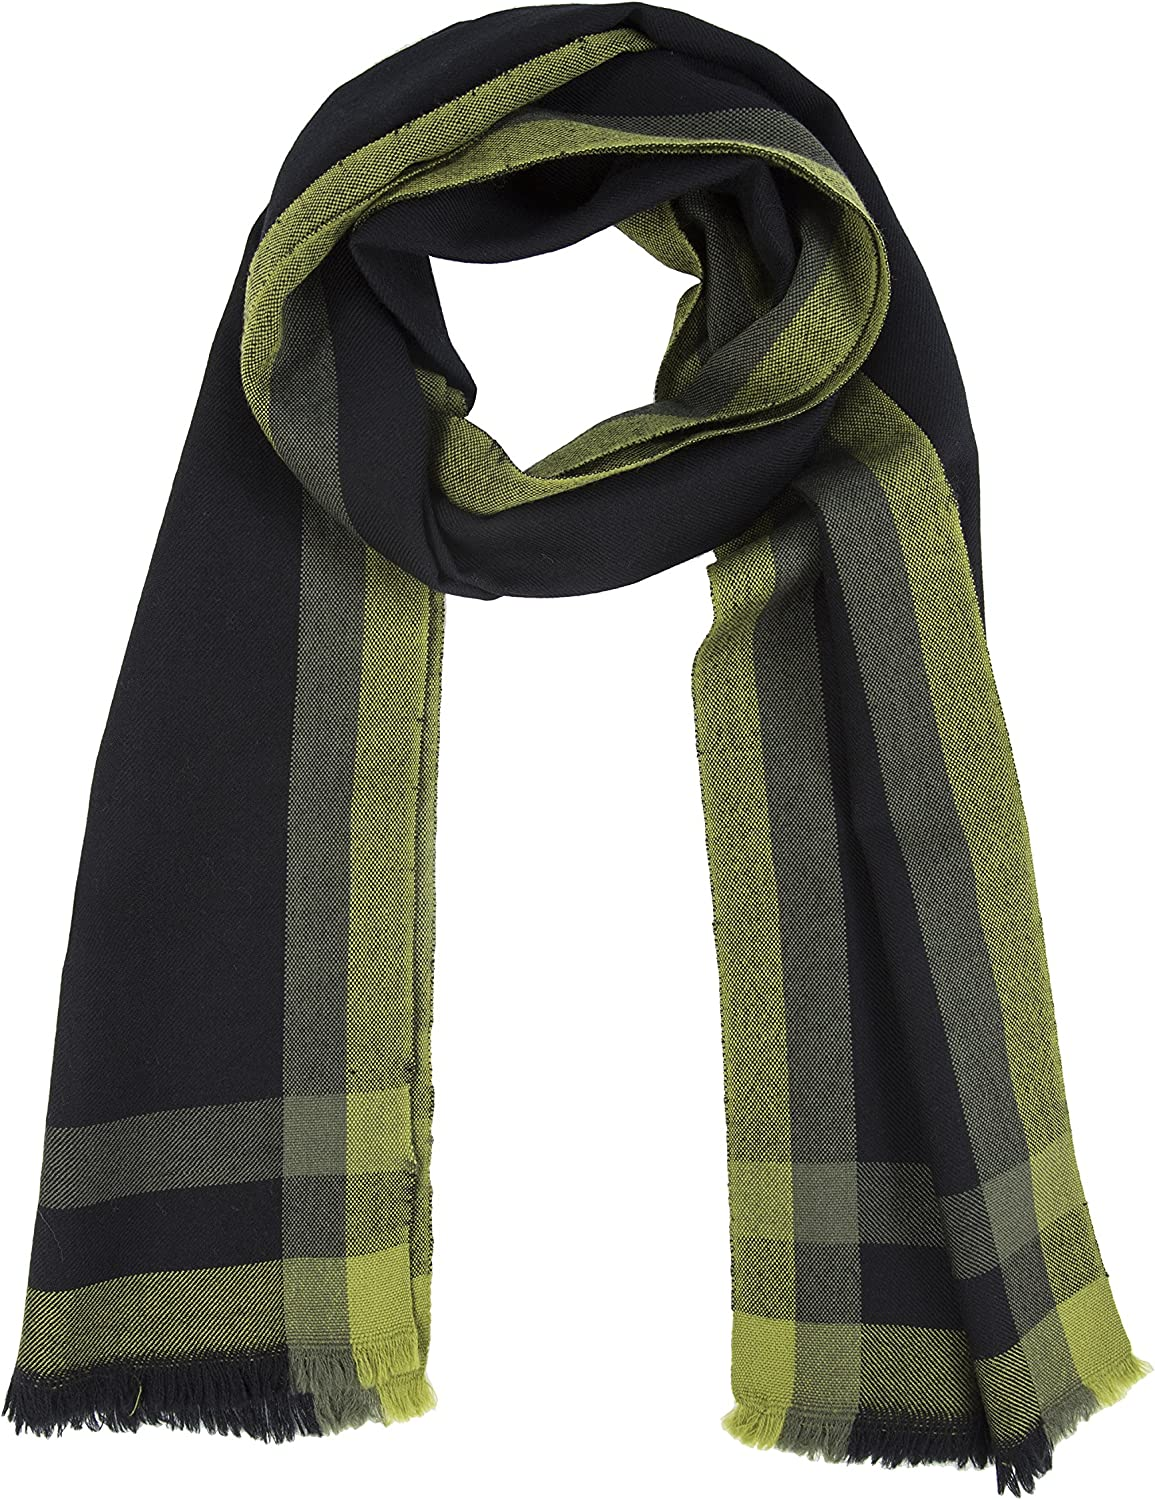 likemary 100% Merino Checks Scarf Pure Wool Winter Pashmina Traditional Houndstooth Plaid Ethical Gift